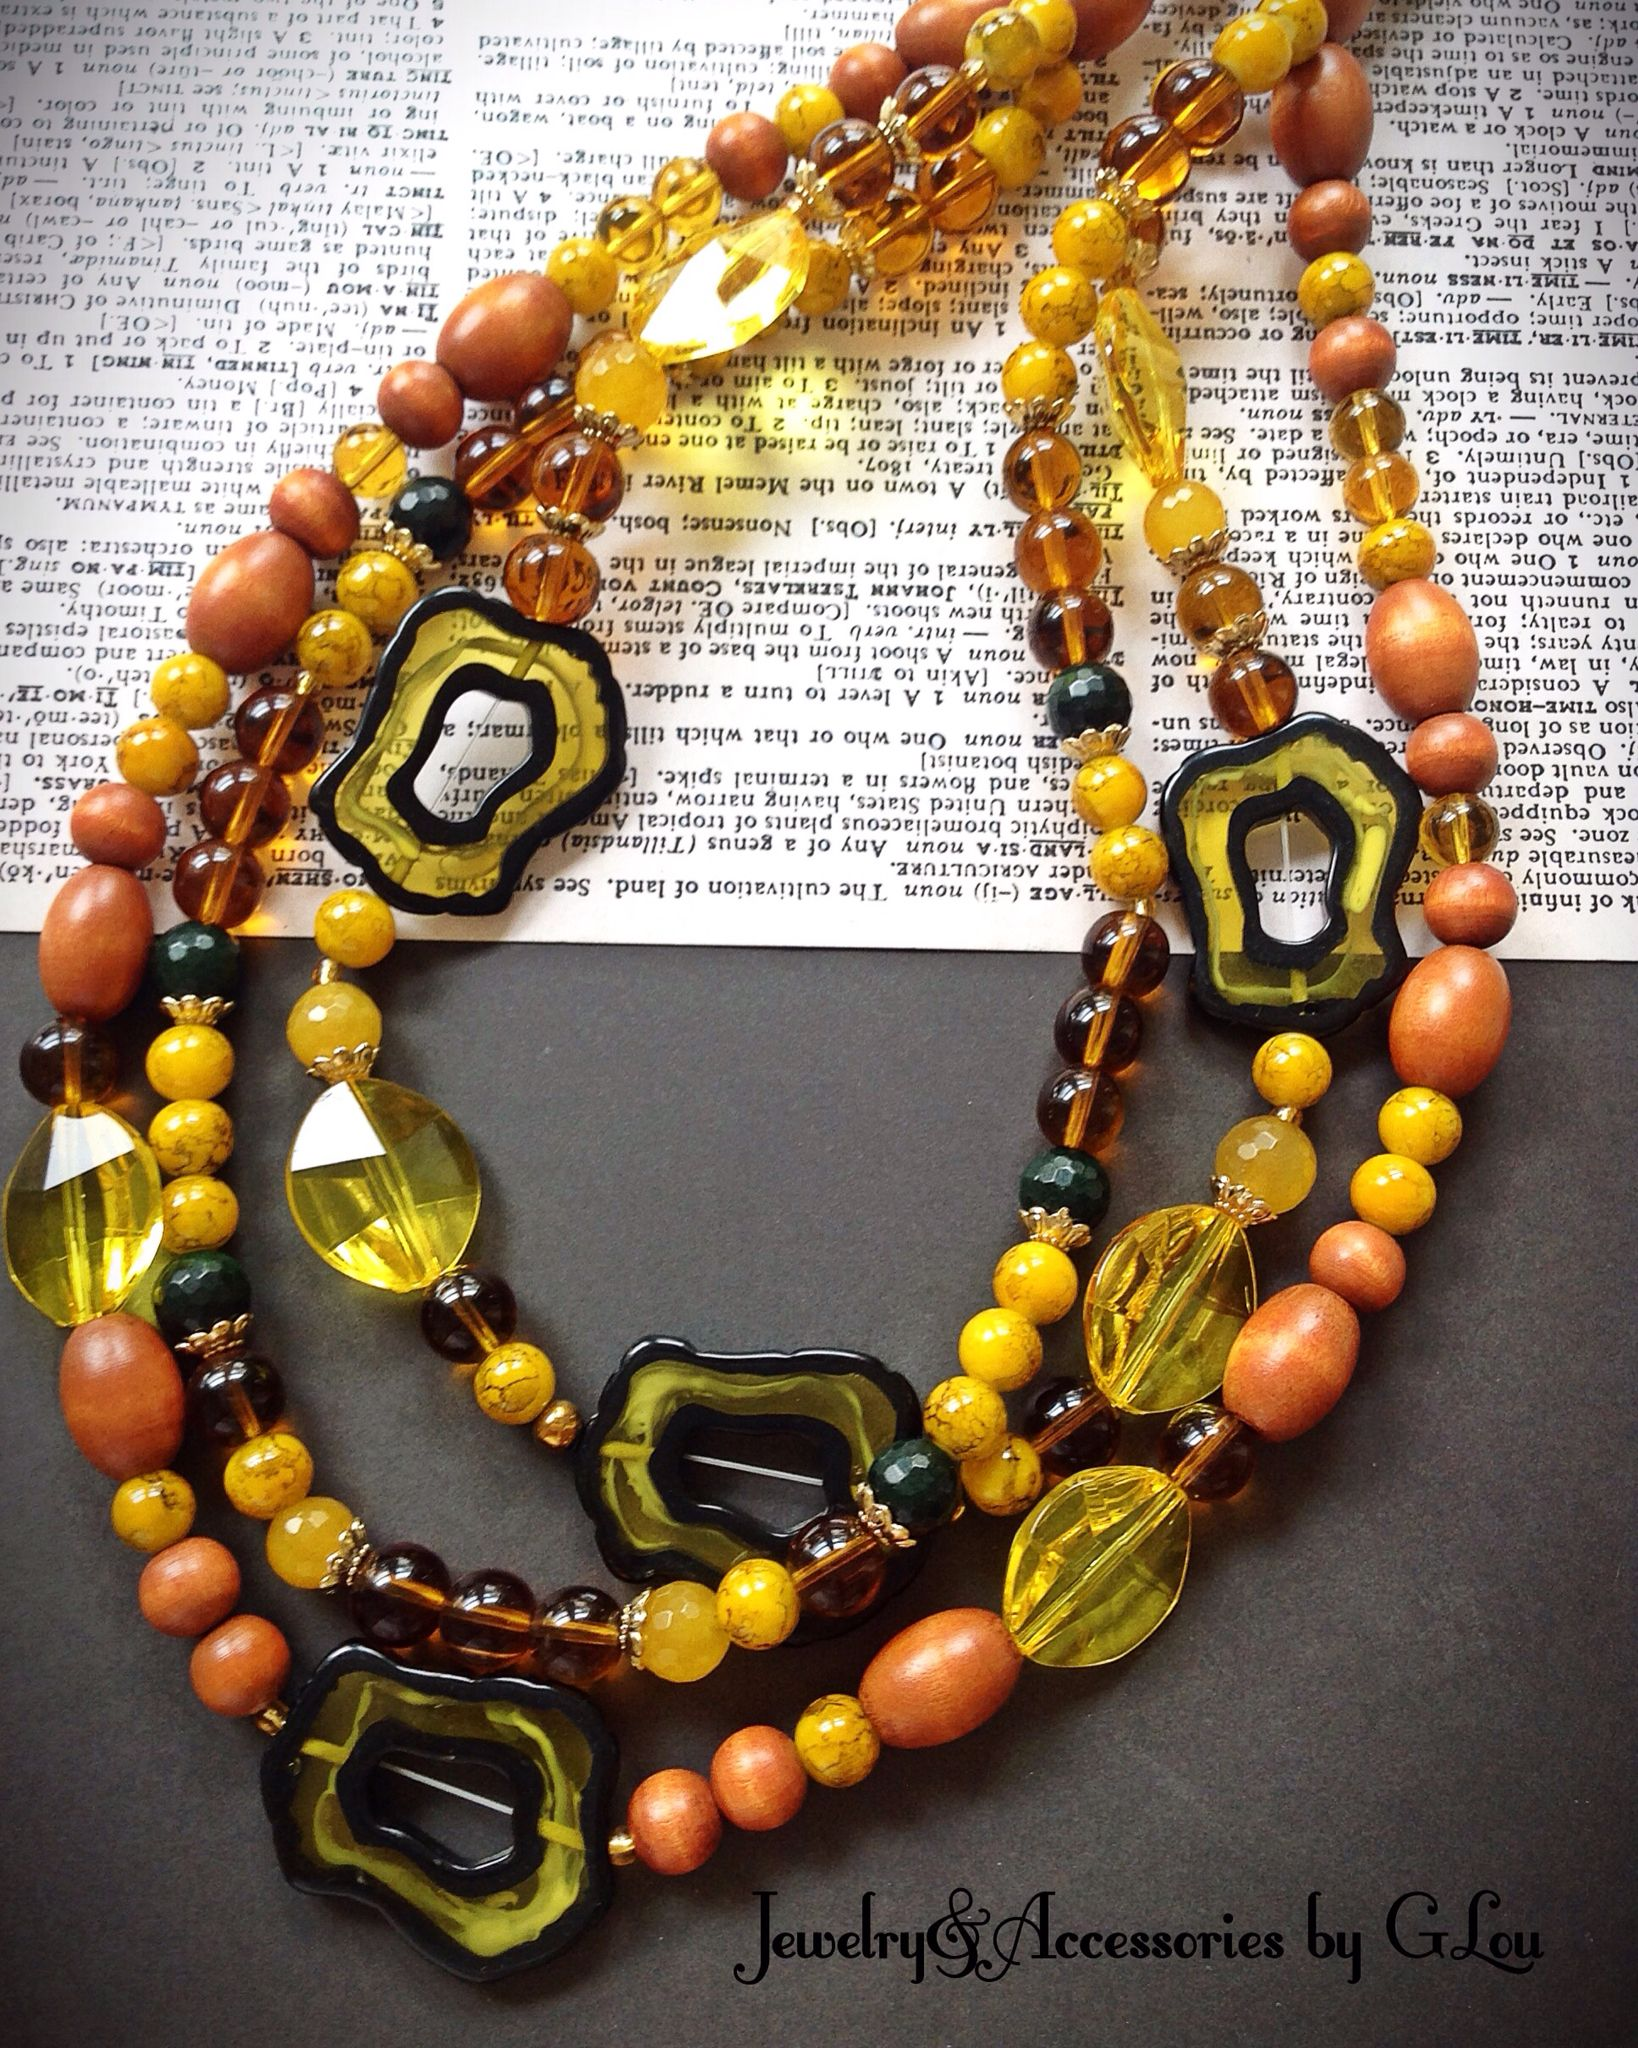 A&FDesigners.Yellow Agate.Peru.Beautiful Jewelry.Wood Beads.Acrylic Beads. #BeautifulNecklace#WhiteJasper#YellowJasper#FashionNecklace#jewelryphotography#PeruvianDesigners#JoyeriahechaaMano#DiseñadoresPeruanos#HandMadeJewelry#ByGLouJewelry#